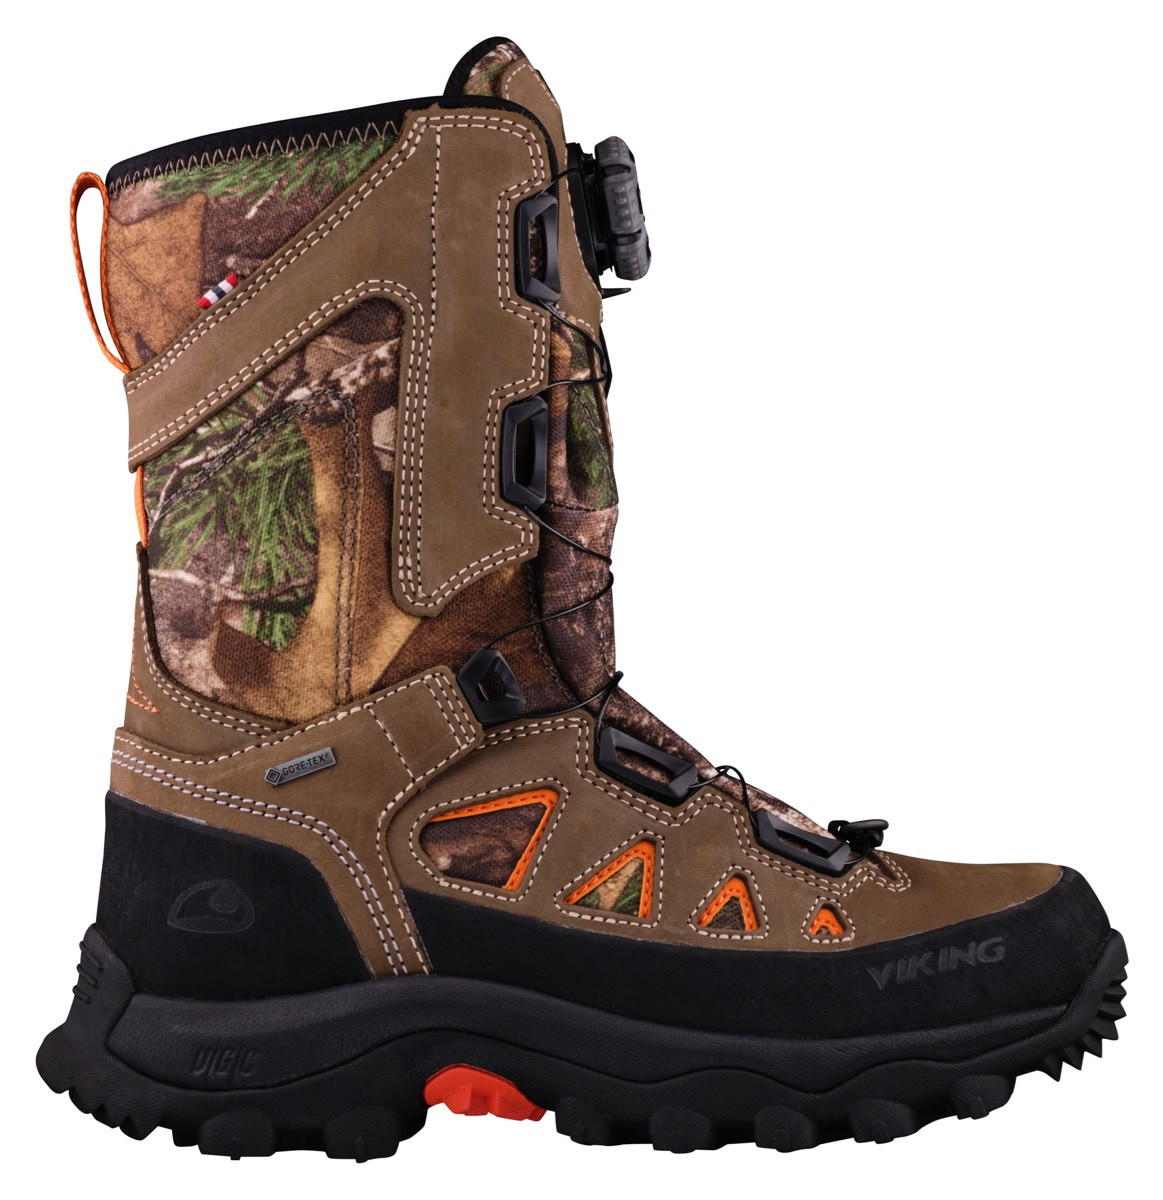 Viking Villrein Rt Boa Gtx CamouflageBurnt Orange